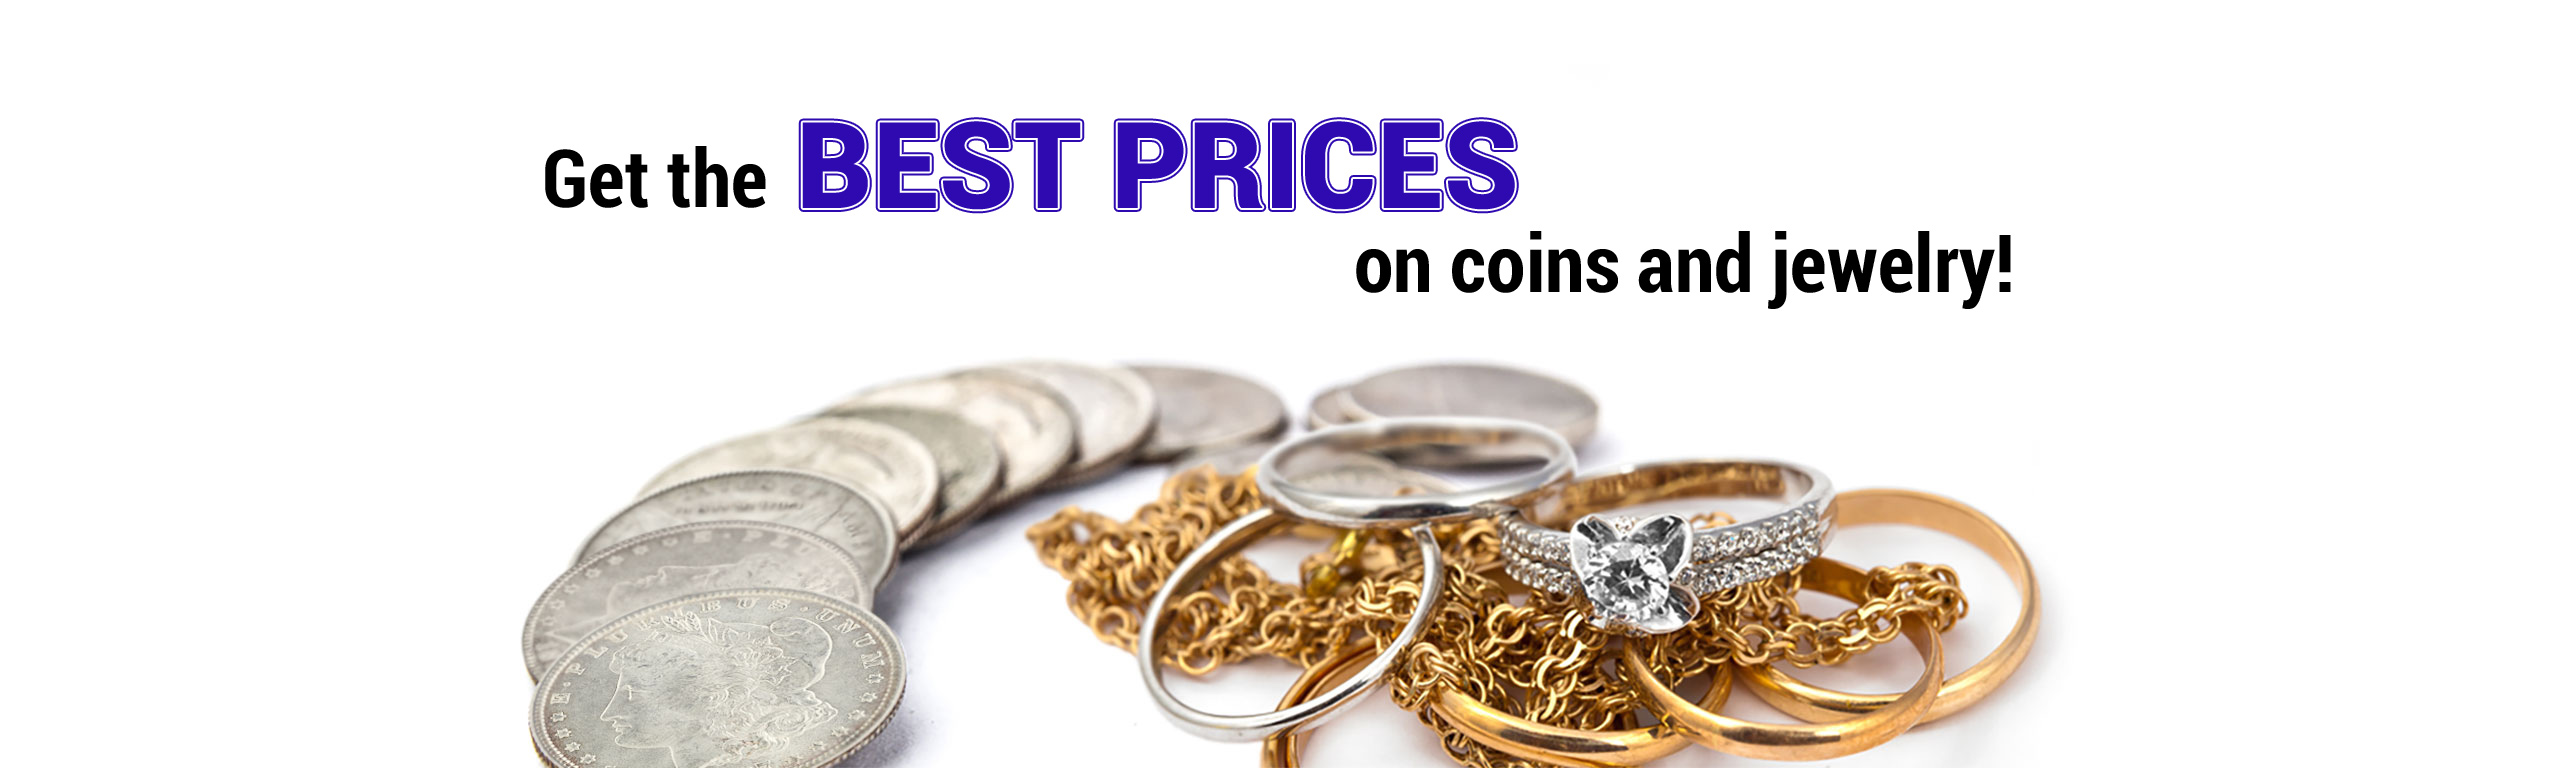 Best Prices on Coins and Jewelry